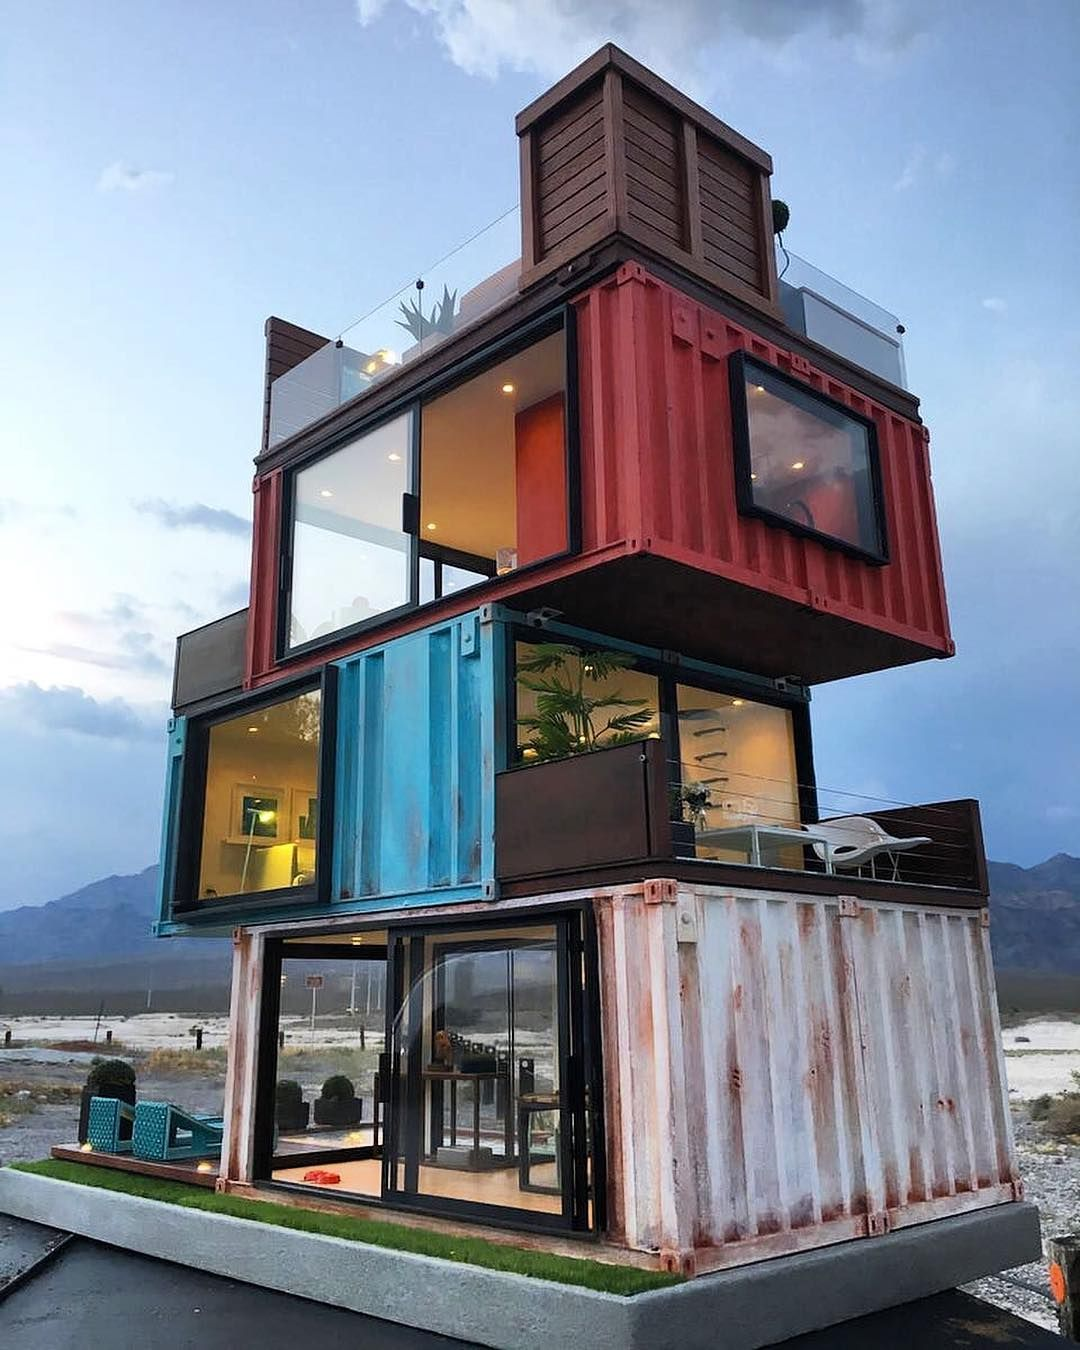 Stacked #containers By Cargotecture. #architecture On